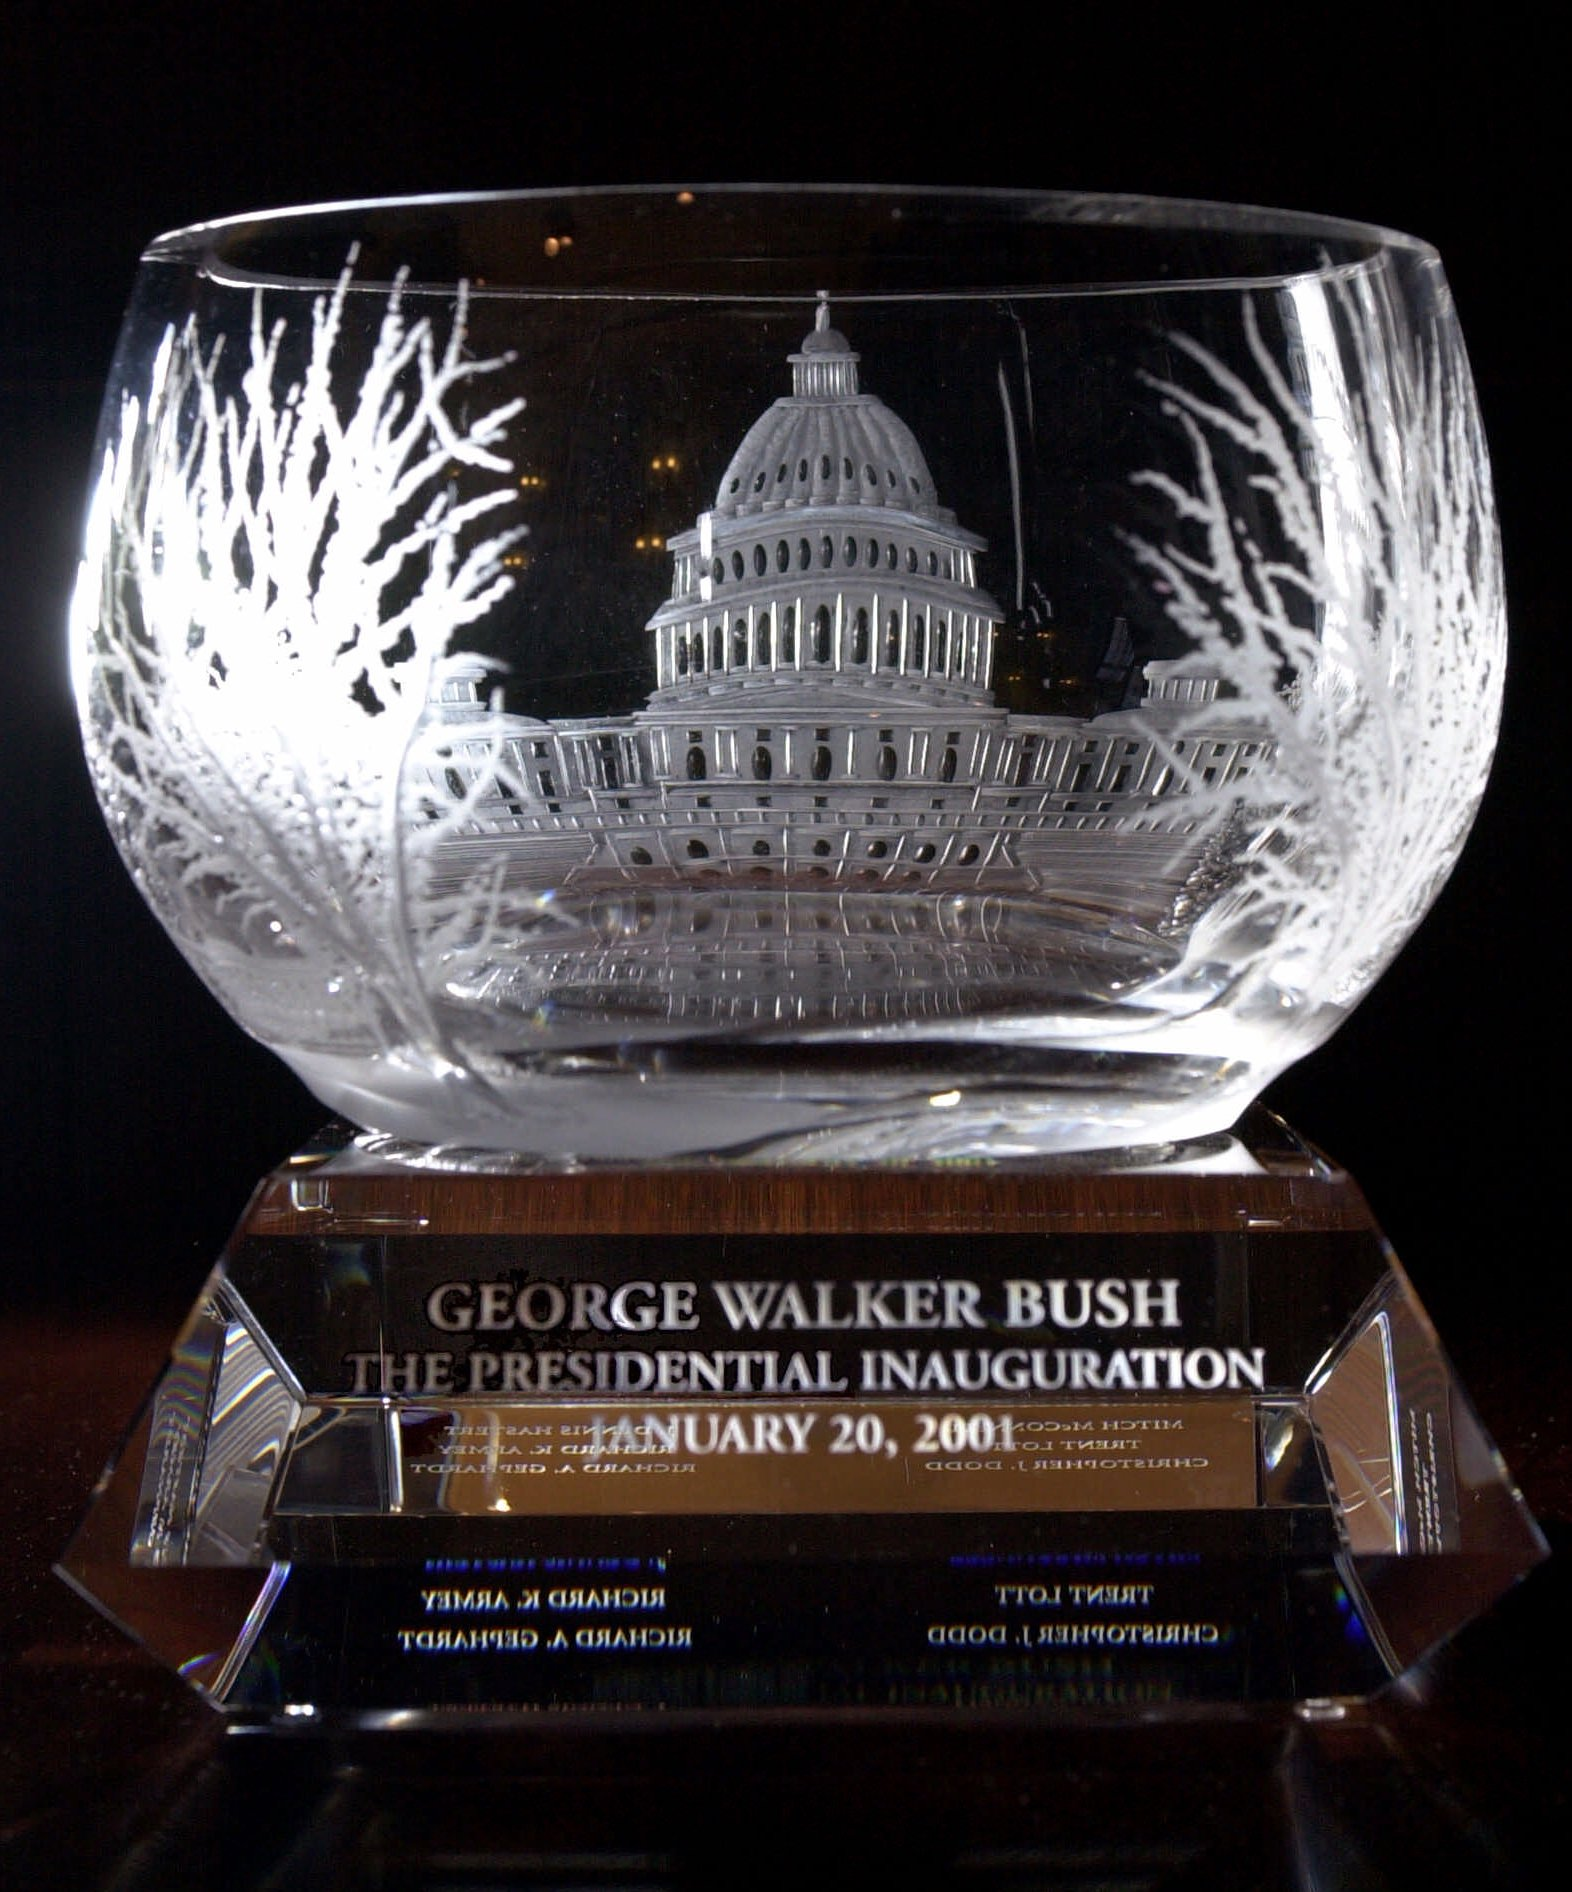 George W. Bush's inaugural gift from Lenox.